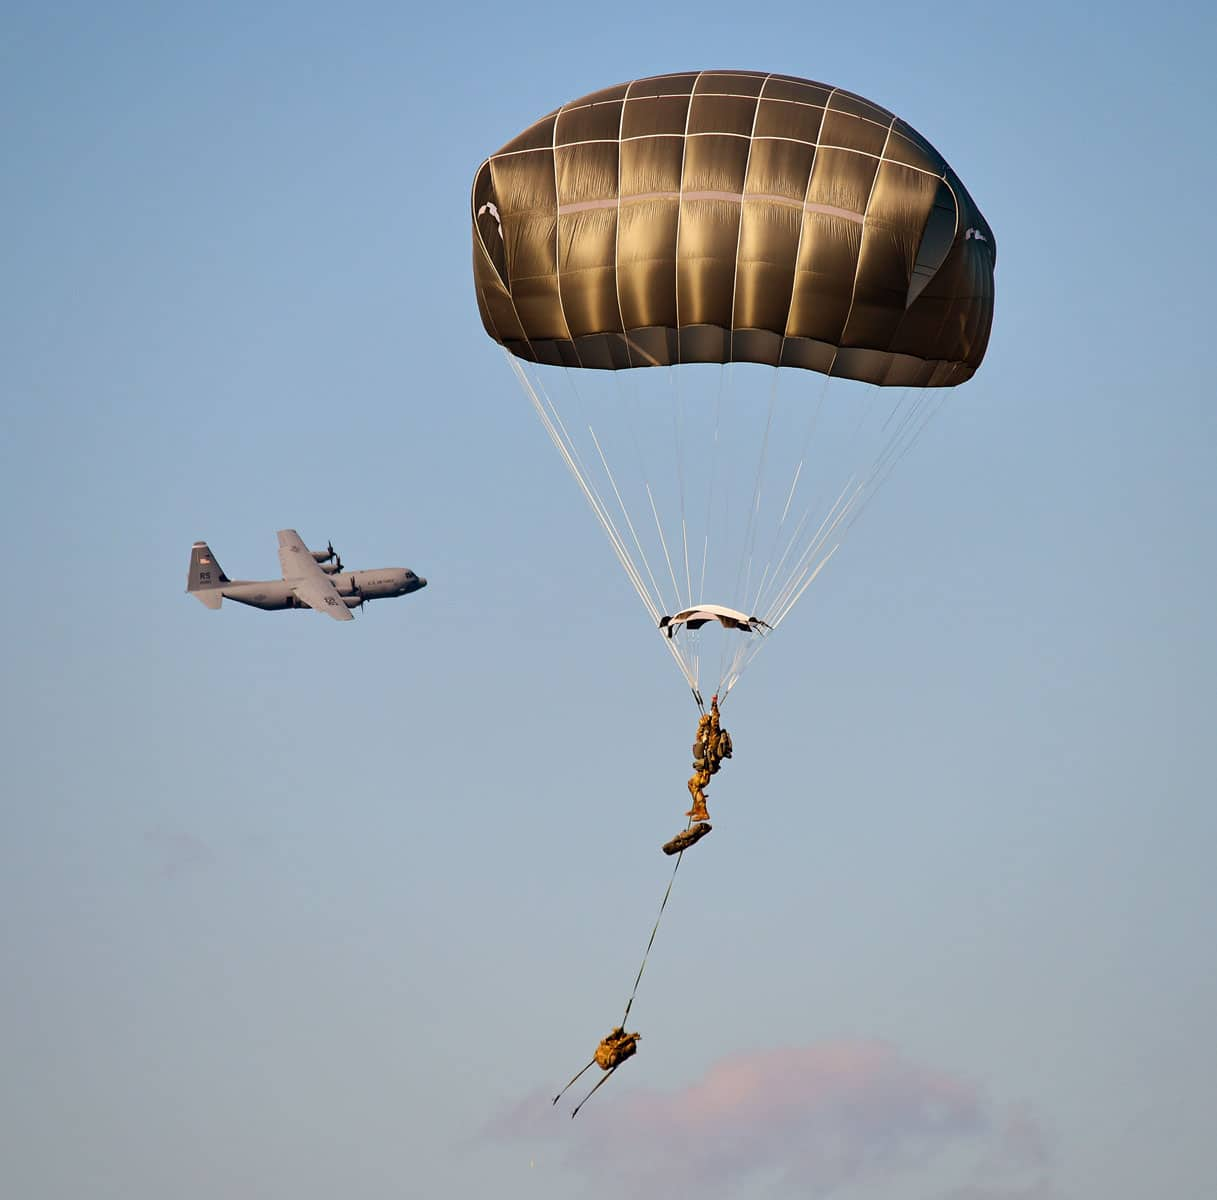 US Army Paratroopers assigned to the 173rd Brigade Support Battalion, 173rd Airborne Brigade, prepare to land after exiting a U.S. Air Force 86th Air Wing C-130 Hercules aircraft during airborne operations at Frida Drop Zone in Pordenone, Italy.